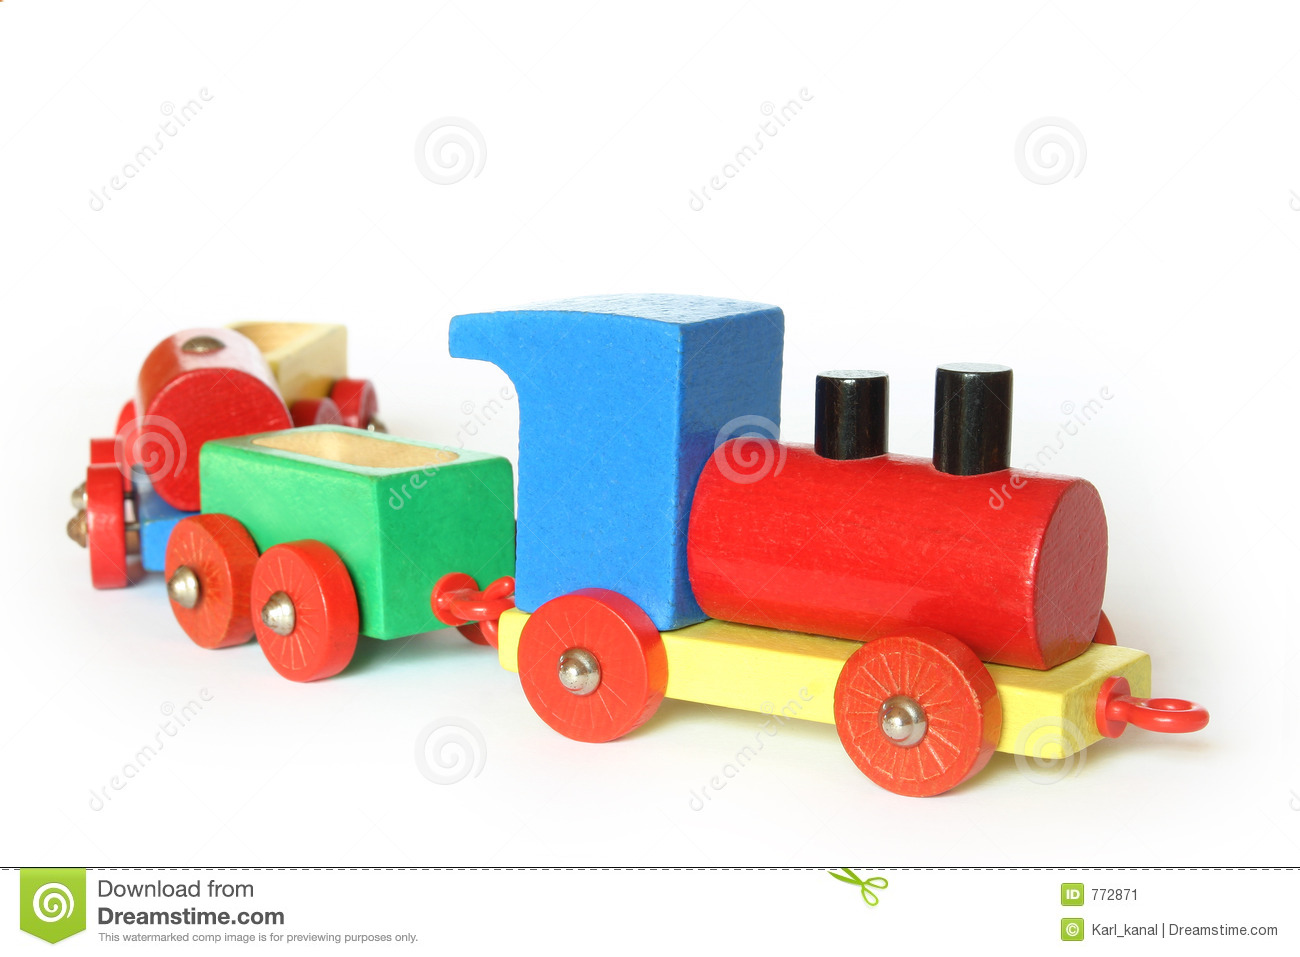 Wooden Toy Train Stock Image - Image: 772871